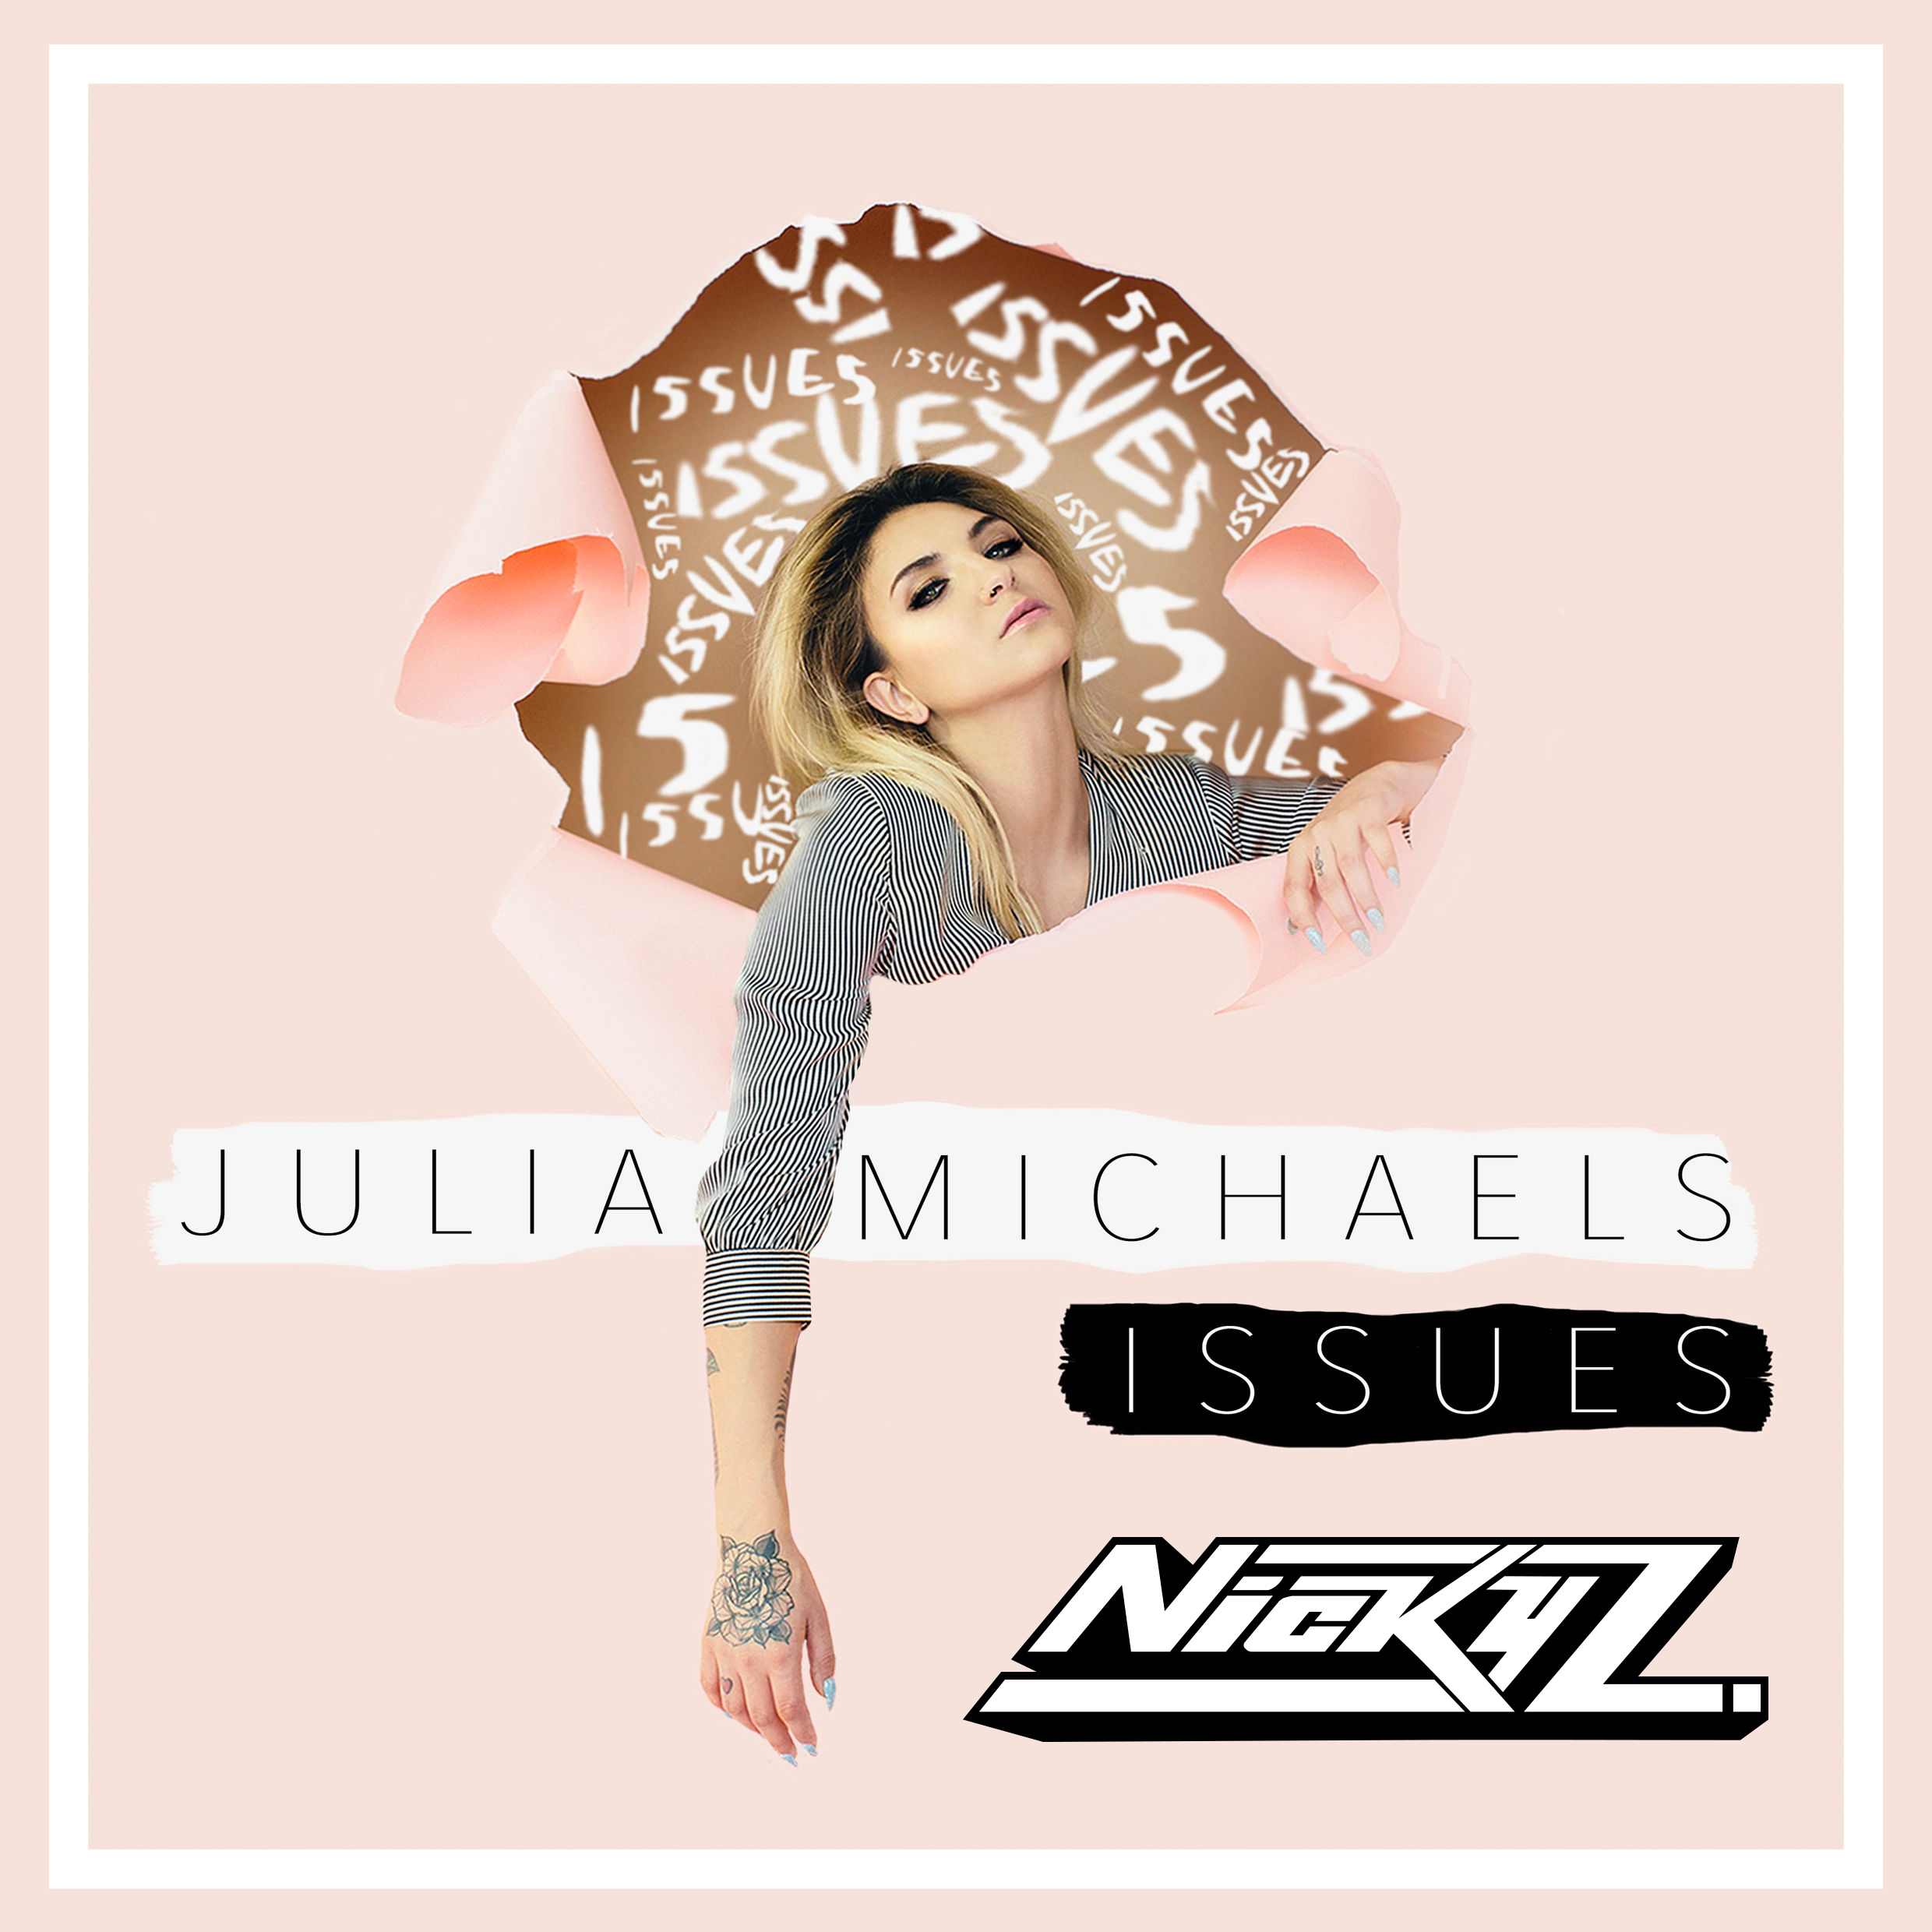 Julia Michaels - Issues - (Nicky Z. Remix)